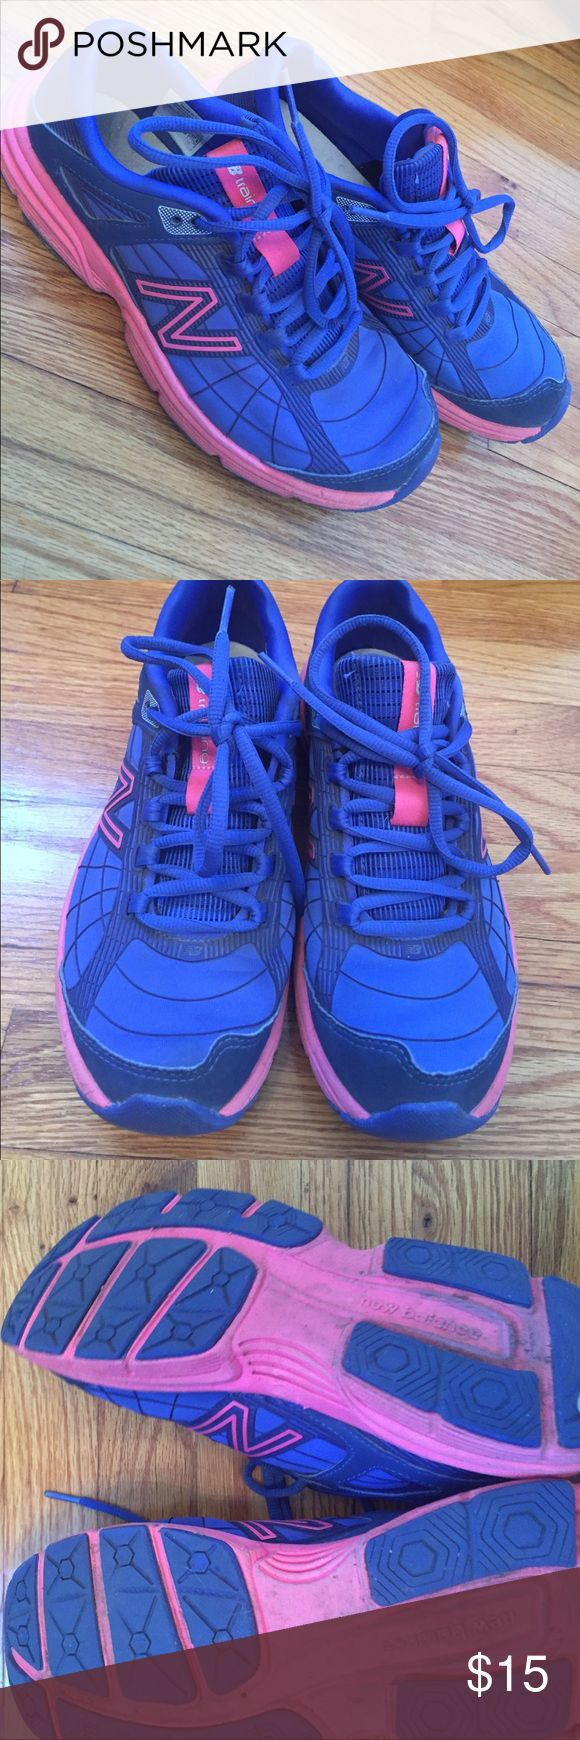 New balance running shoes Barely worn cute new balance workout shoes. I'm not much of a runner, so I've rarely worn these. Good condition and ready to do some laps! New Balance Shoes Sneakers